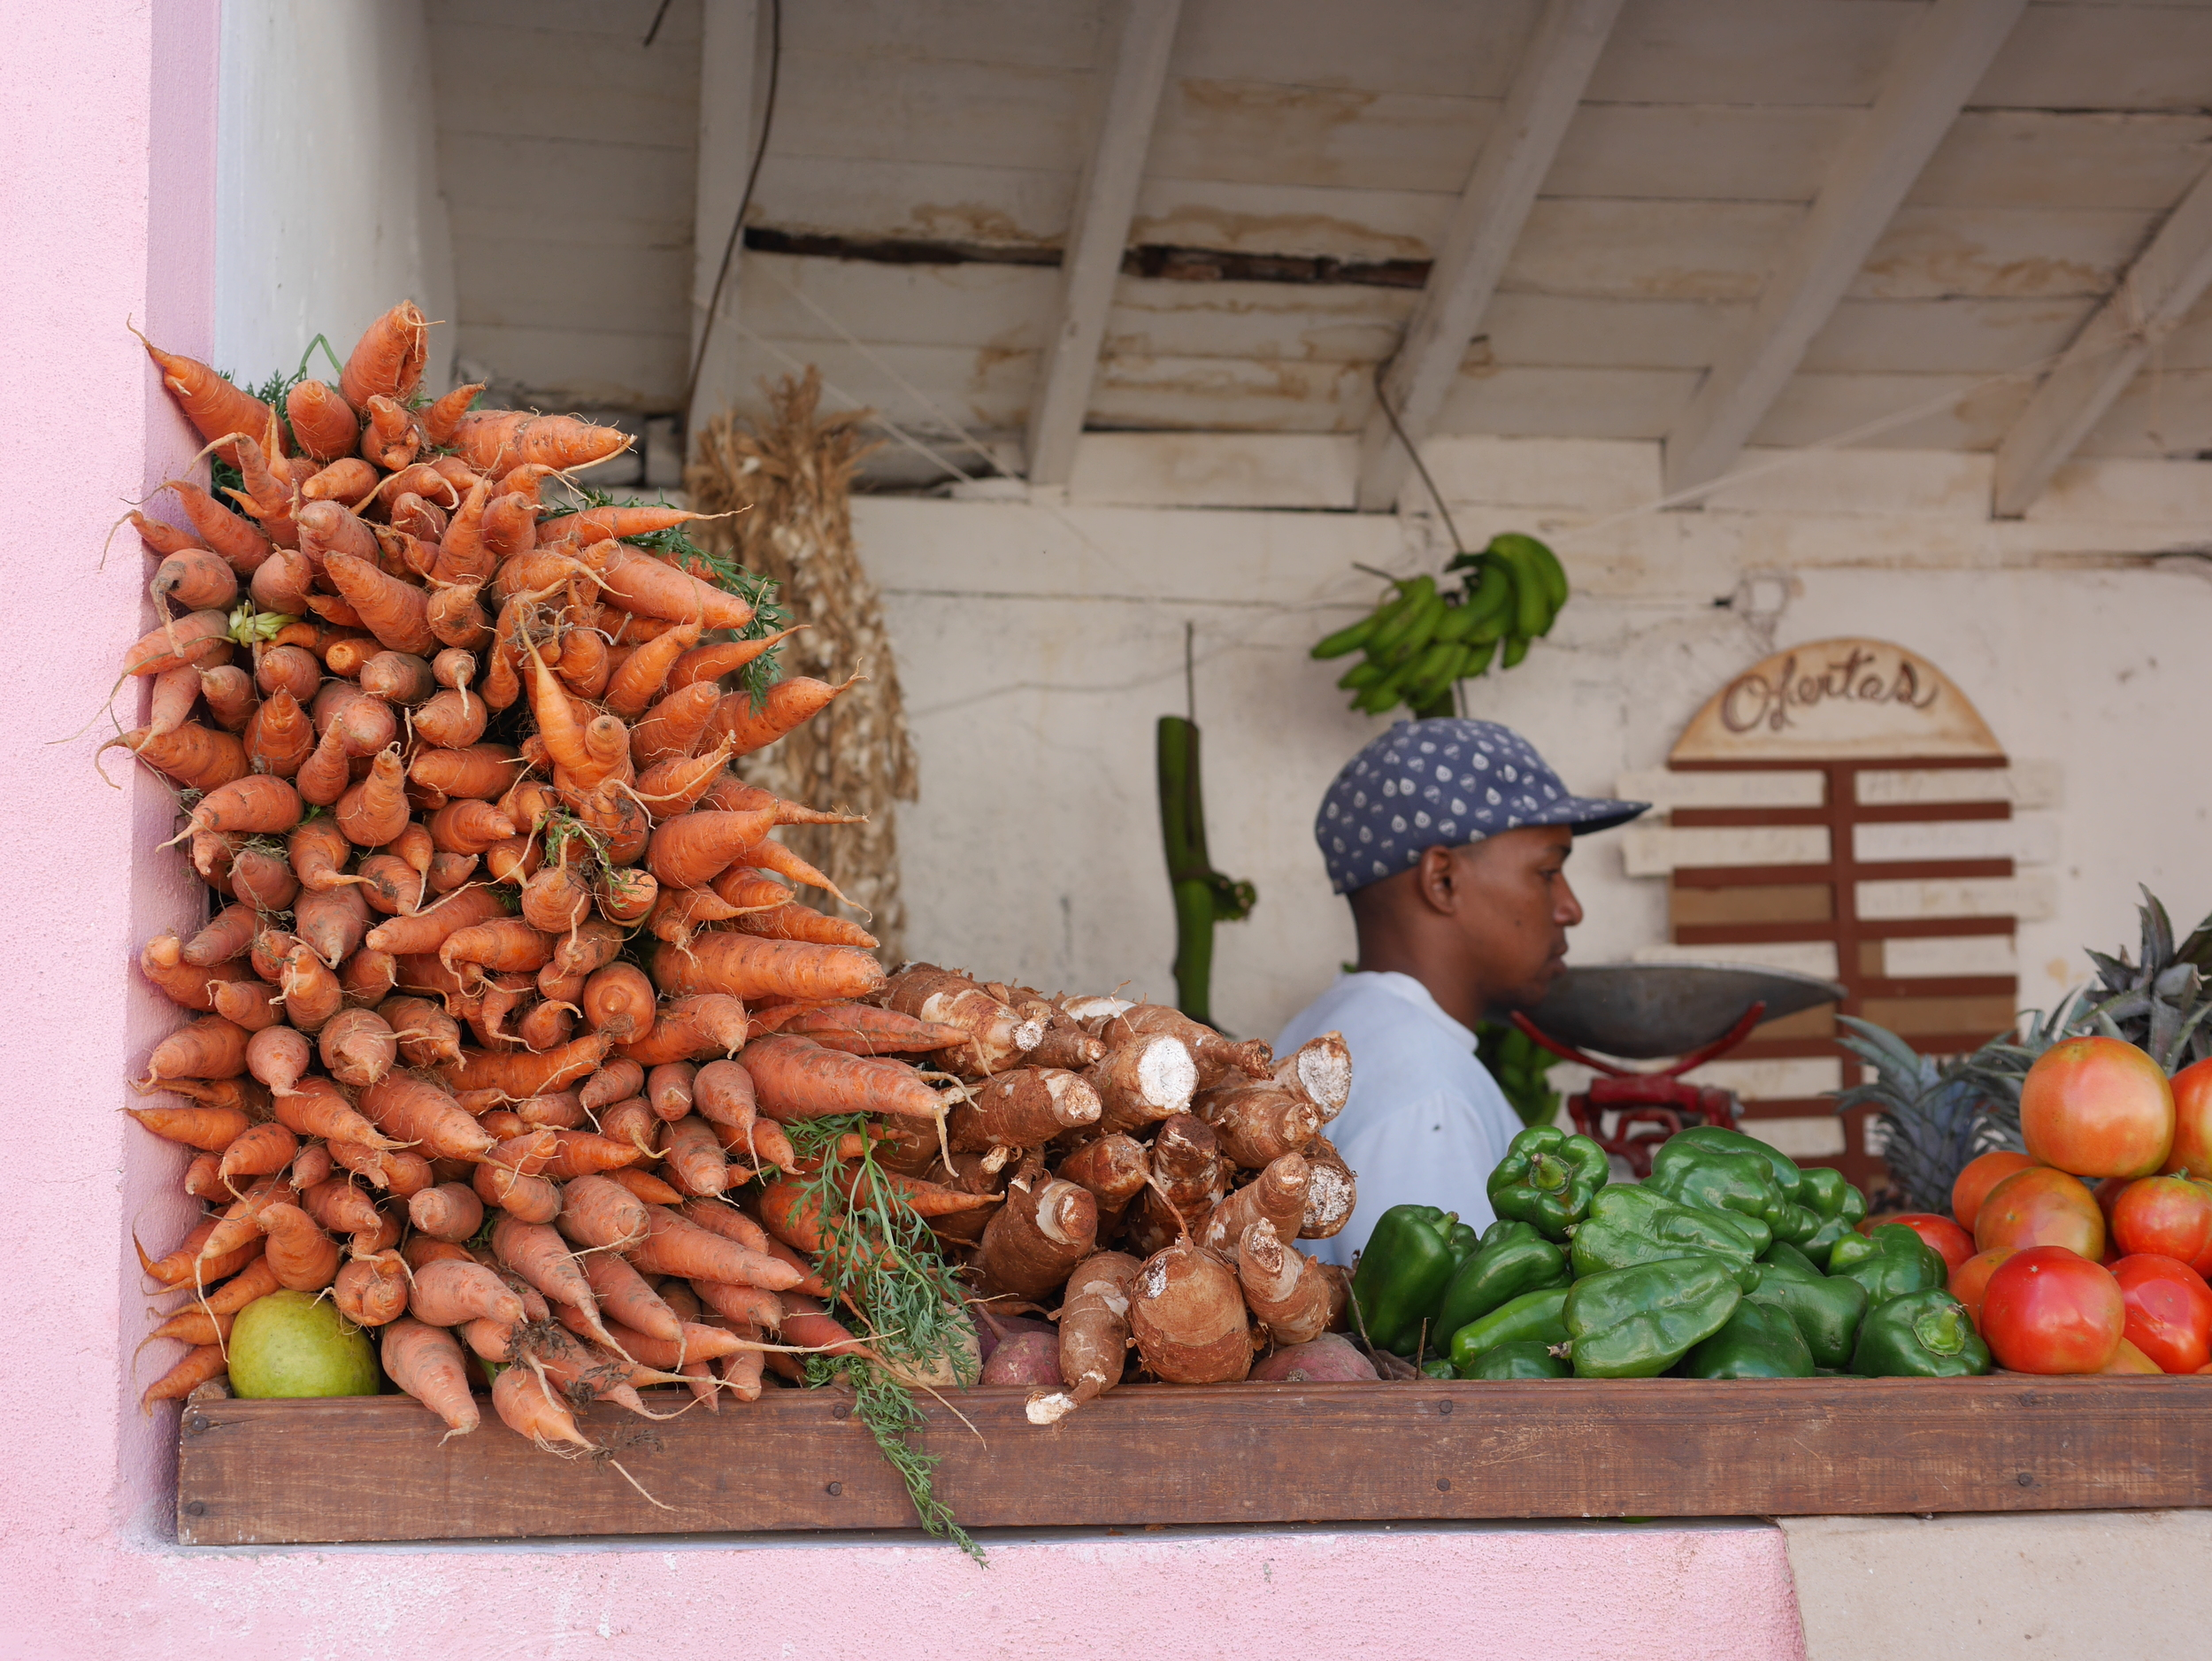 Vegetables, fruit and meat are purchased at neighborhood stands scattered throughout the town.